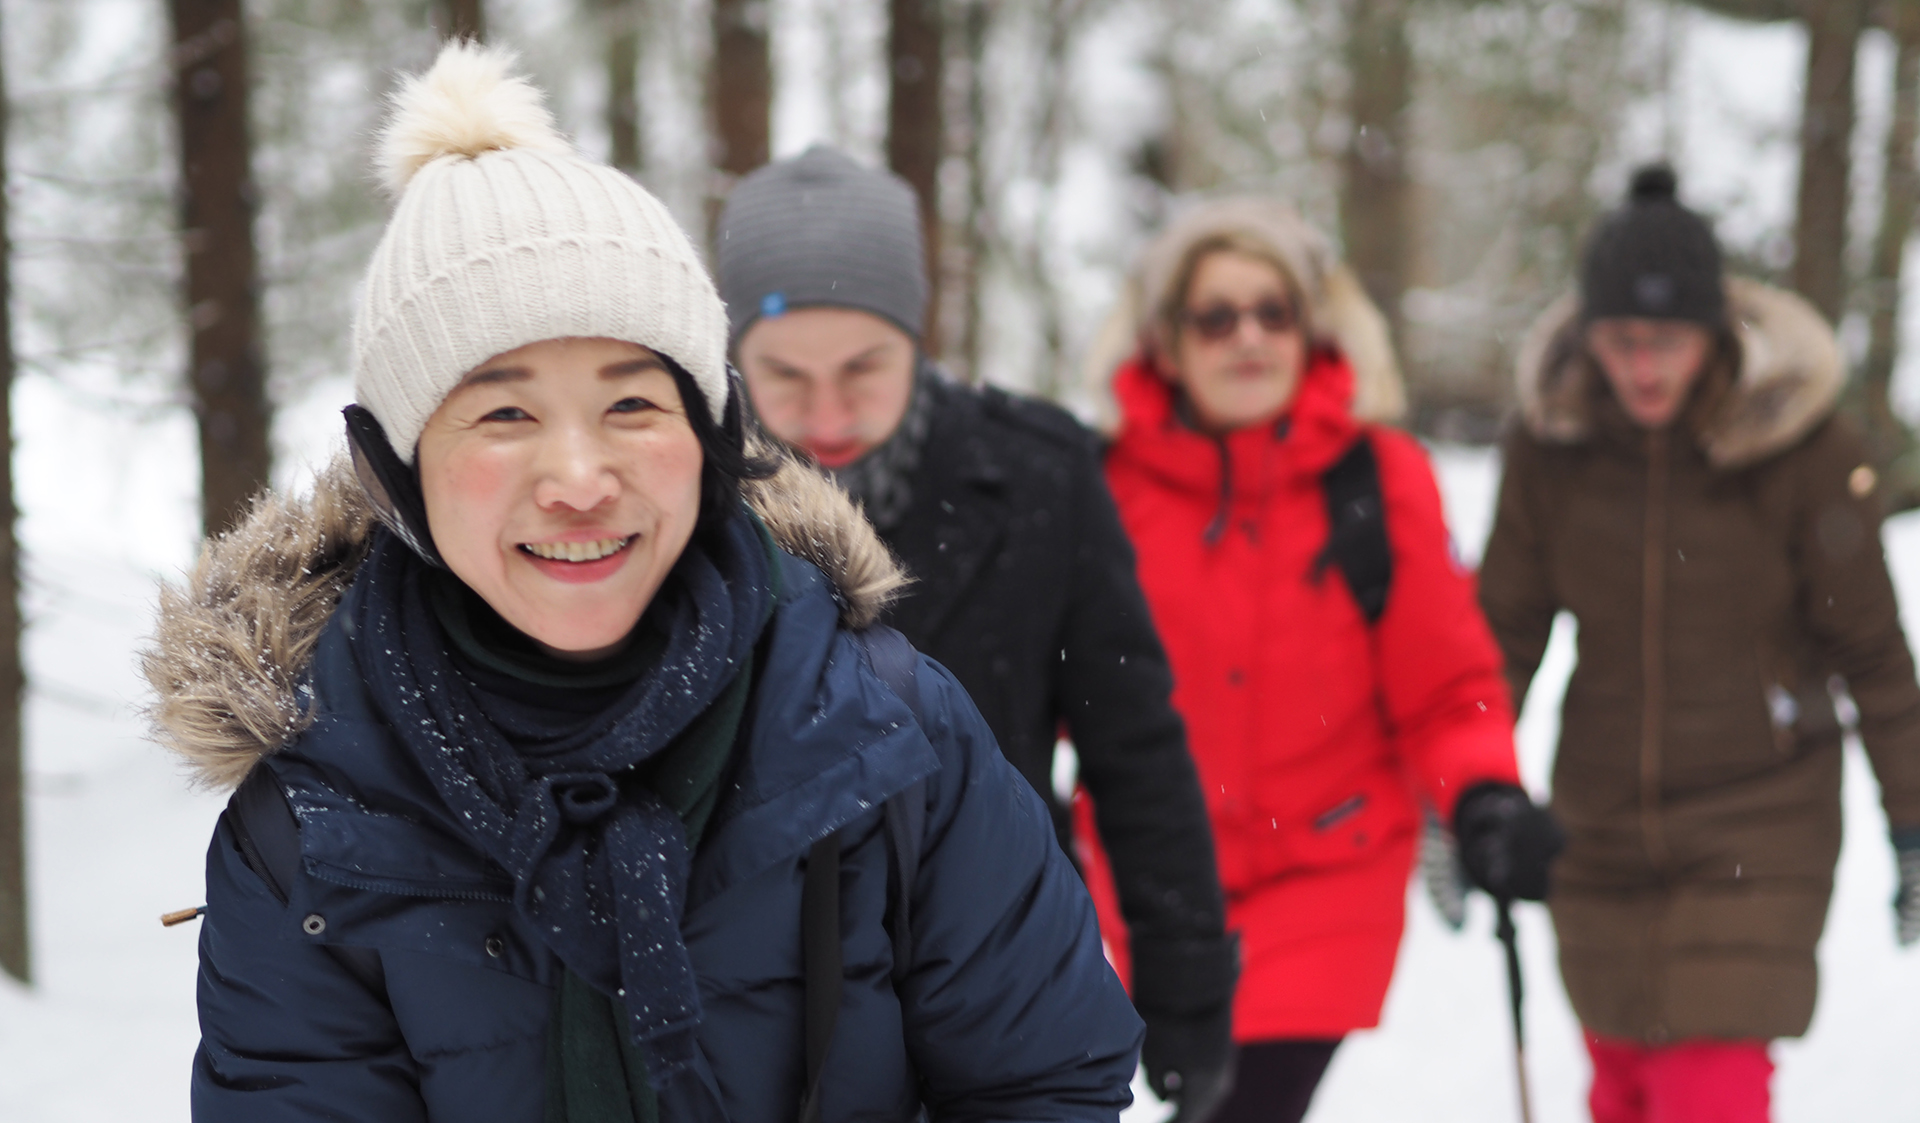 Visiting fellows in snowy Nuuksio forest